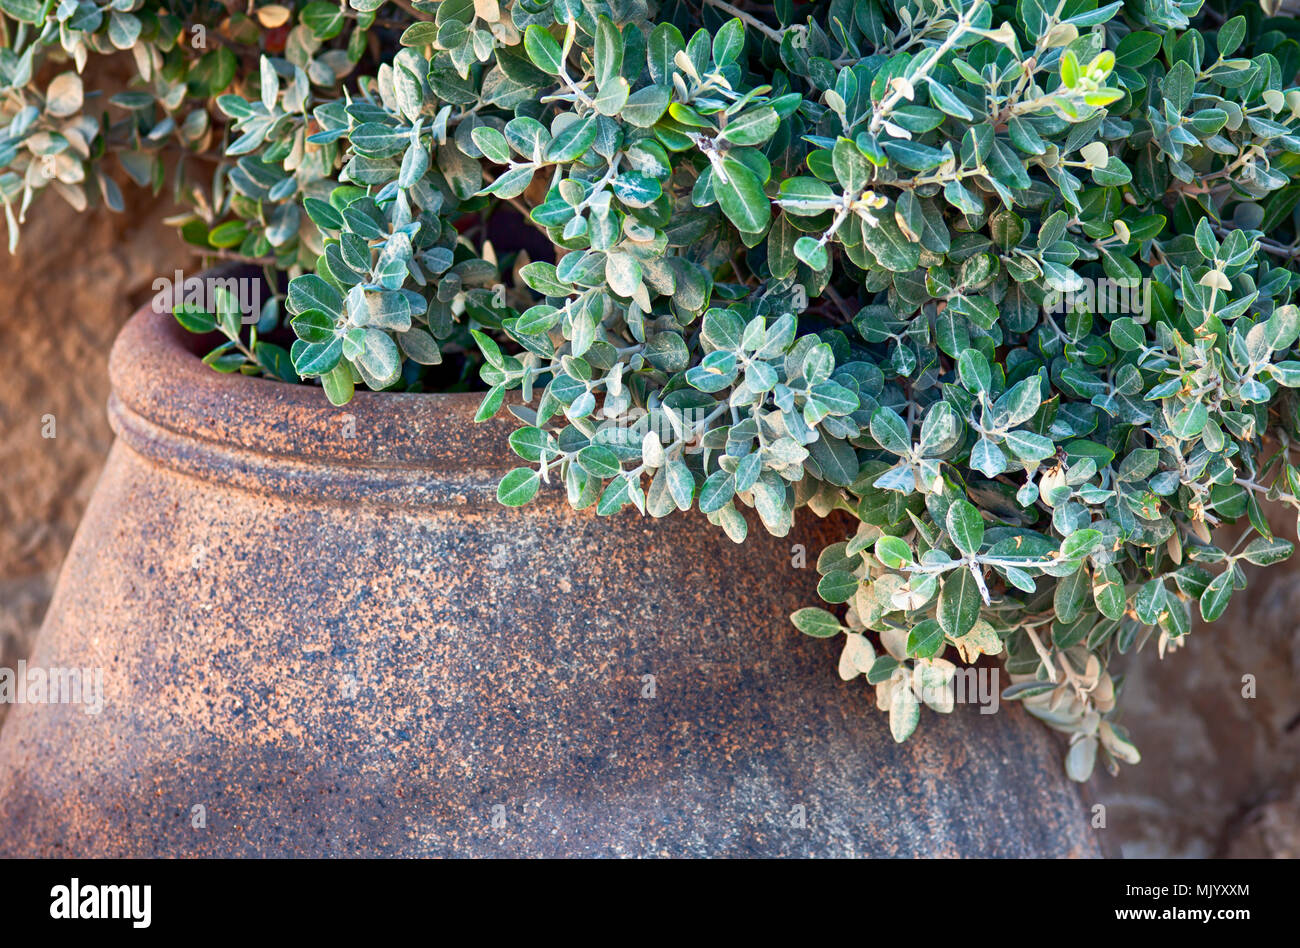 Green plant in stone pot. Close-up. - Stock Image